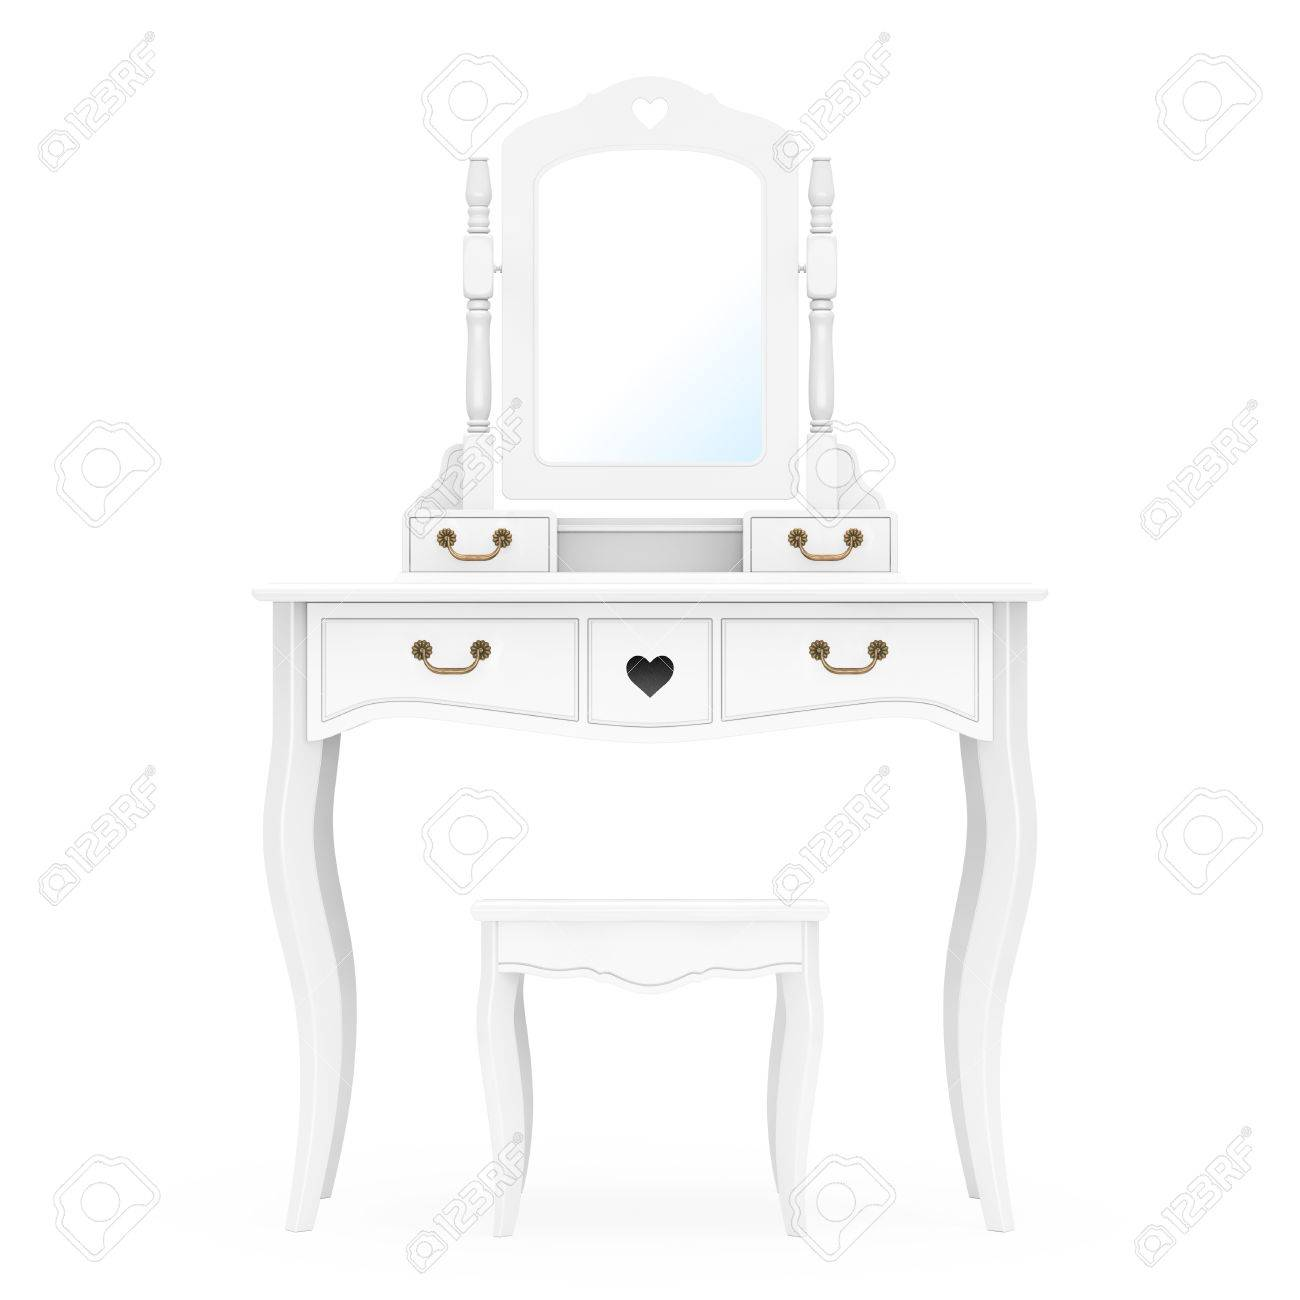 Antique Bedroom Vanity Table with Stool and Mirror on a white..